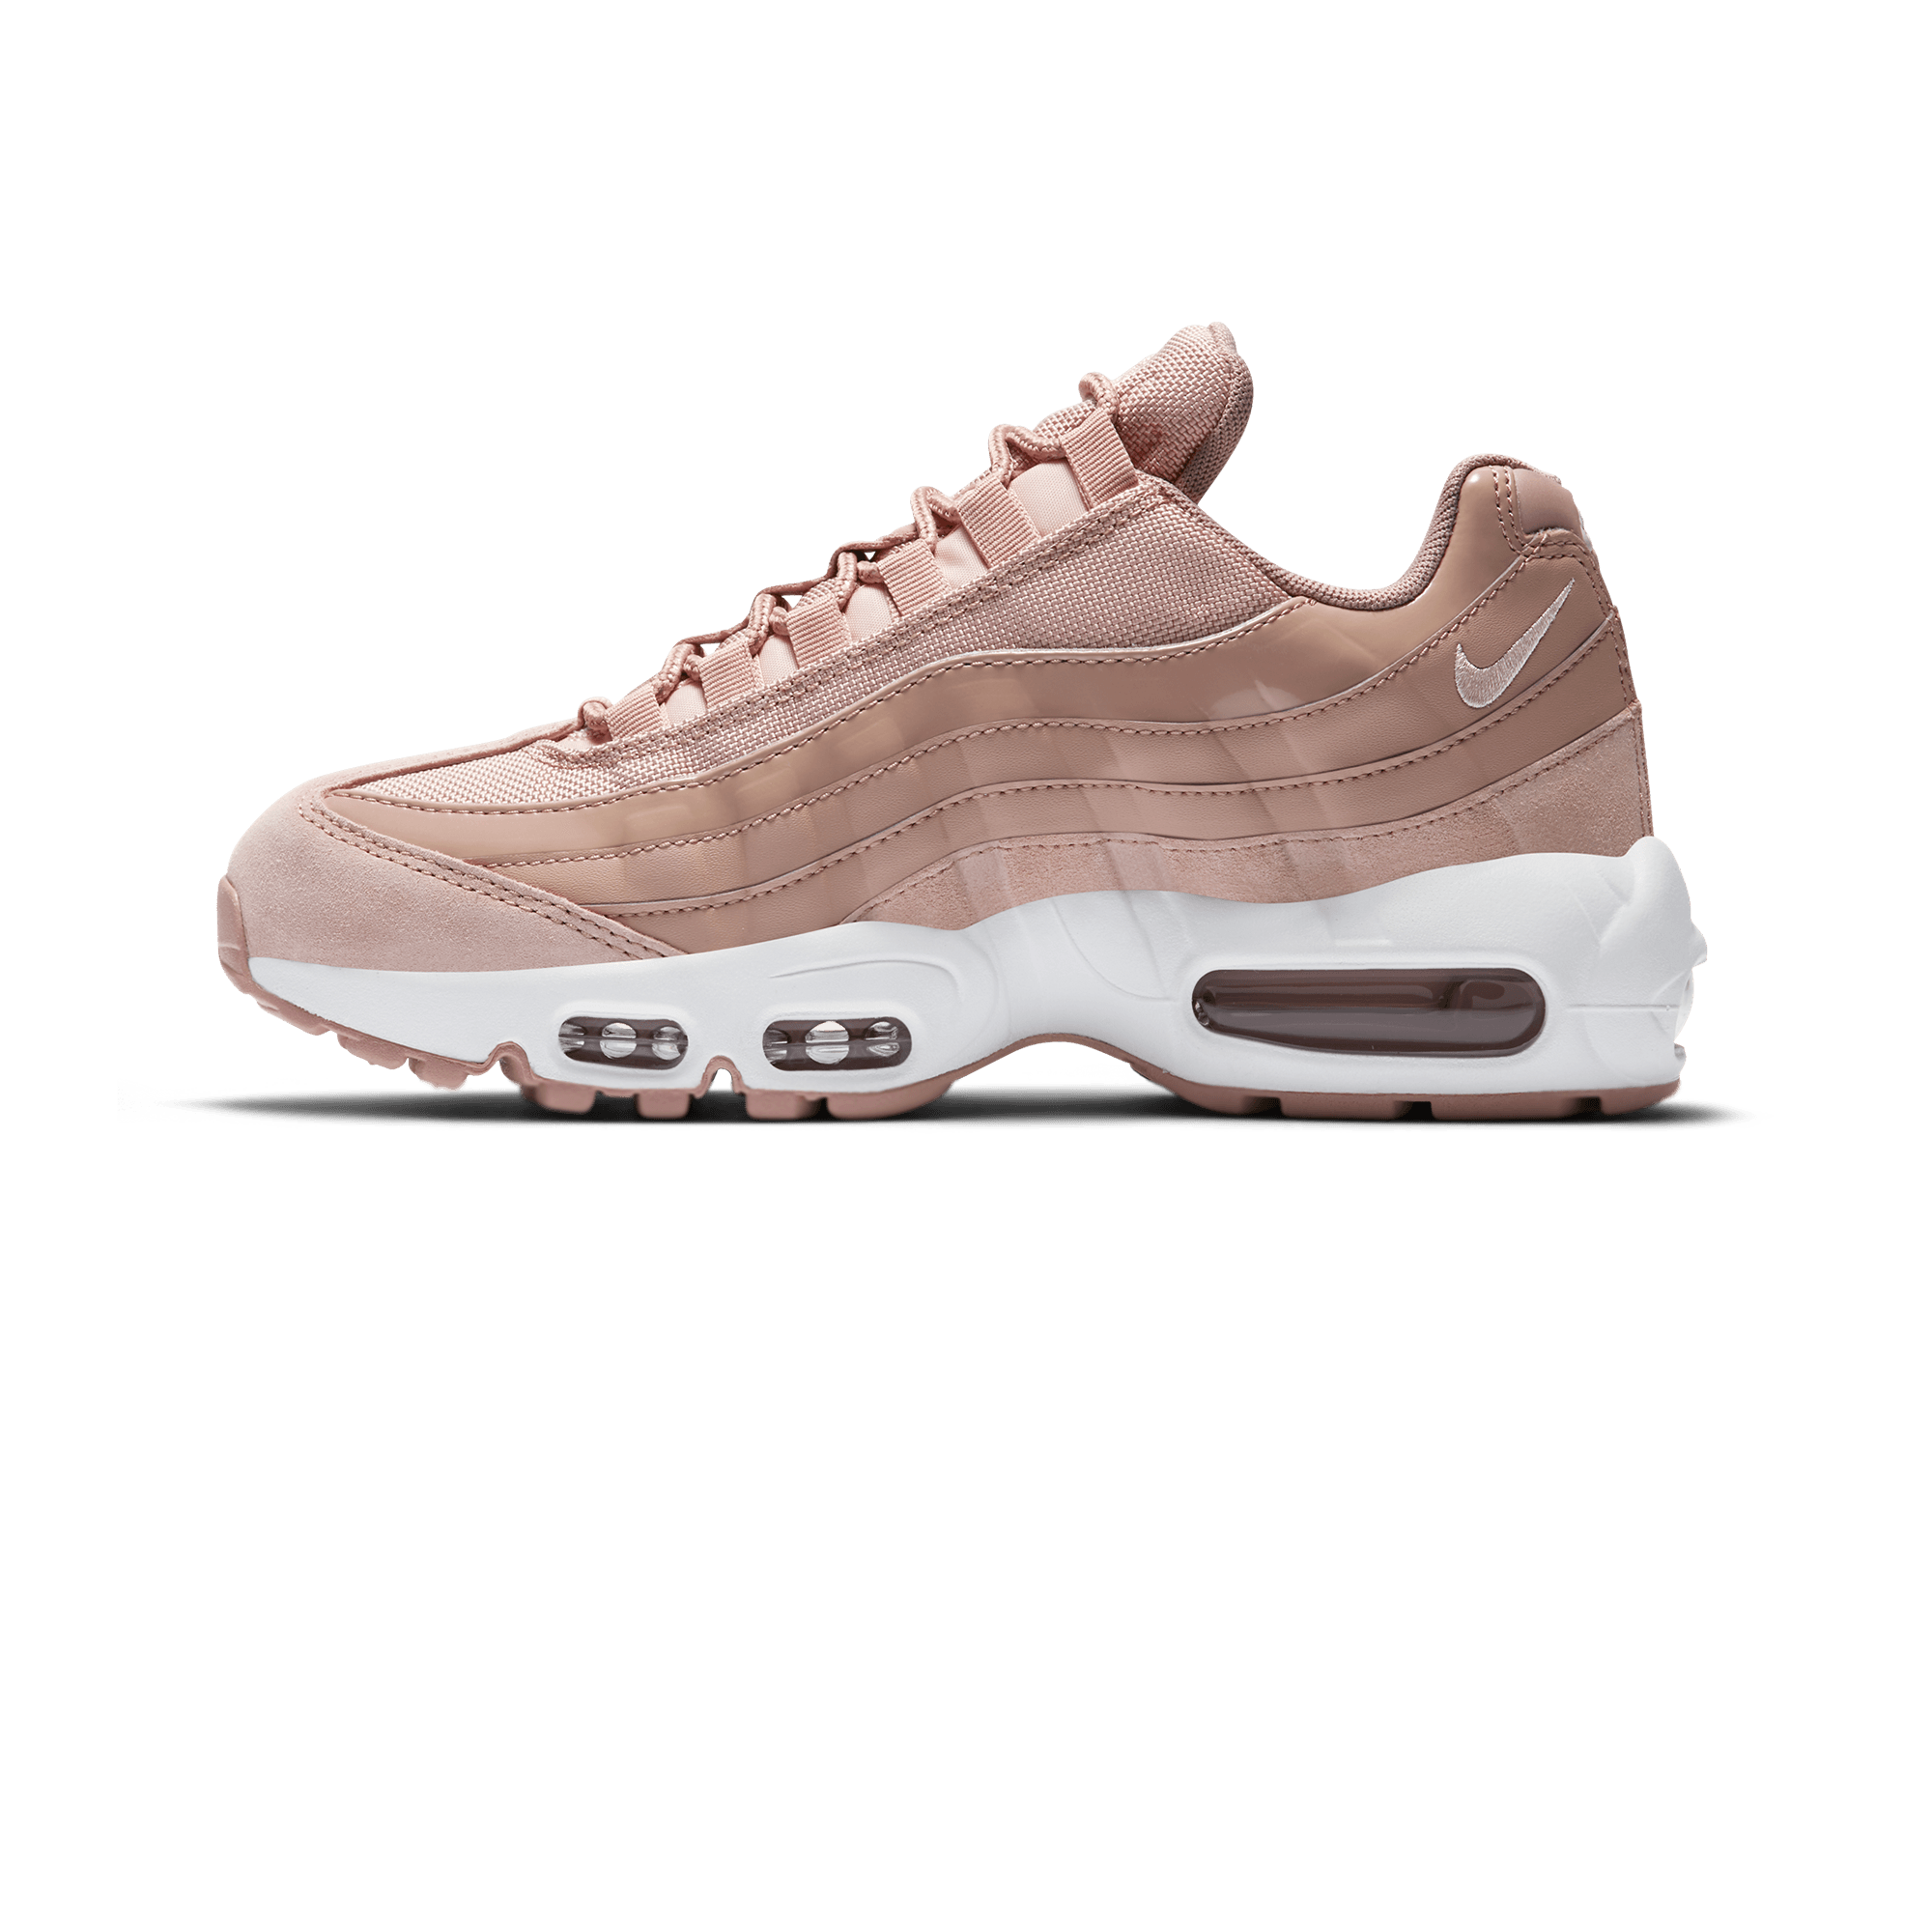 quality design 806ba 451bf Nike Air Max 95 W particle pink/silt red/white - Woman | Holypopstore.com